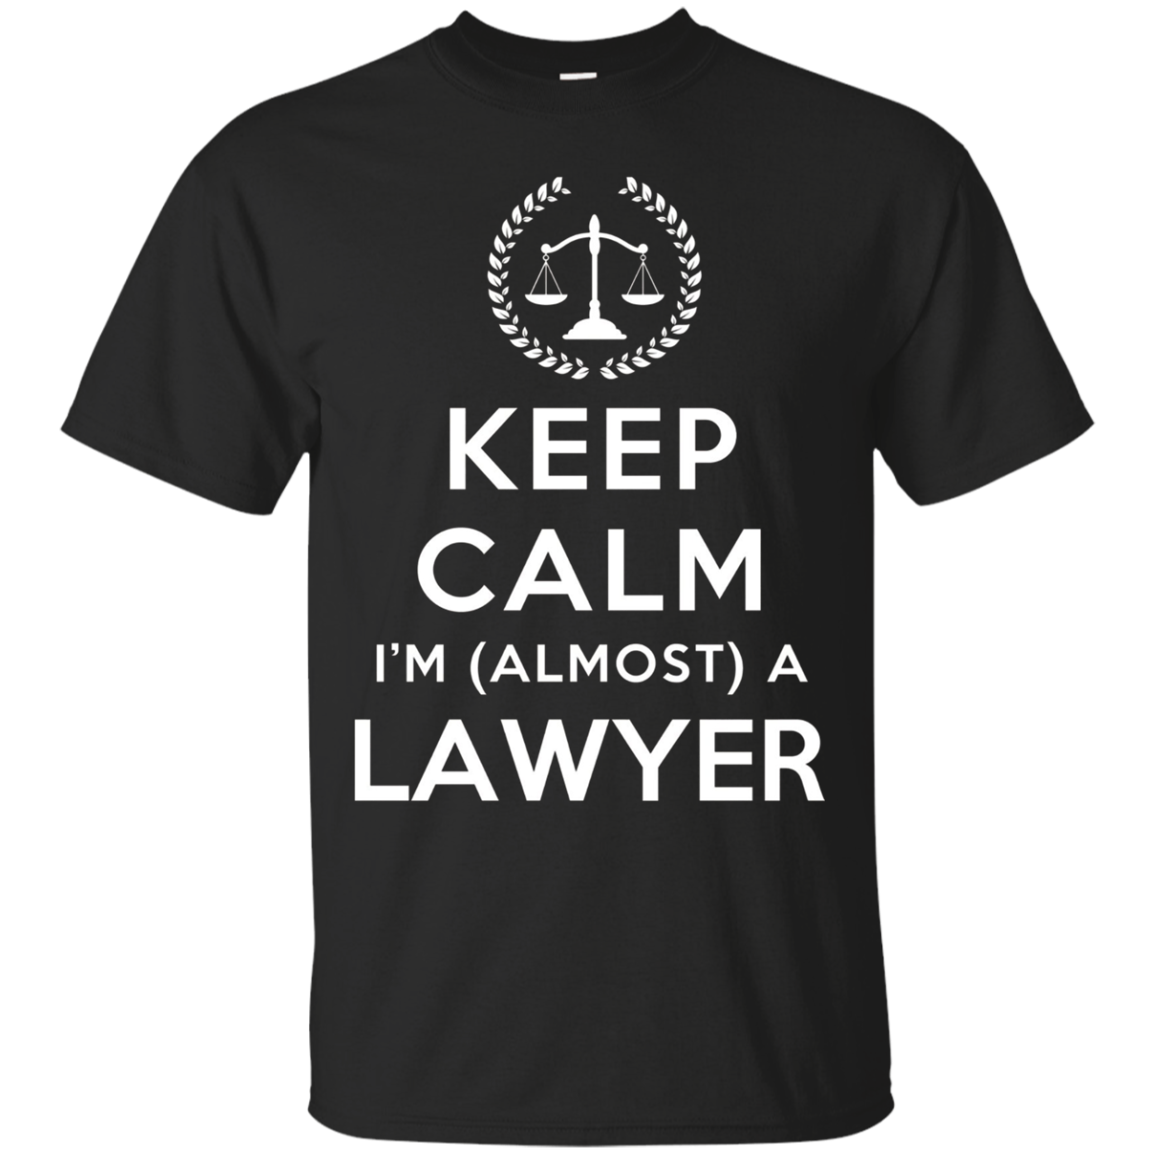 Law Student Lawyer Almost A Lawyer Gift - Men Women T-Shirt